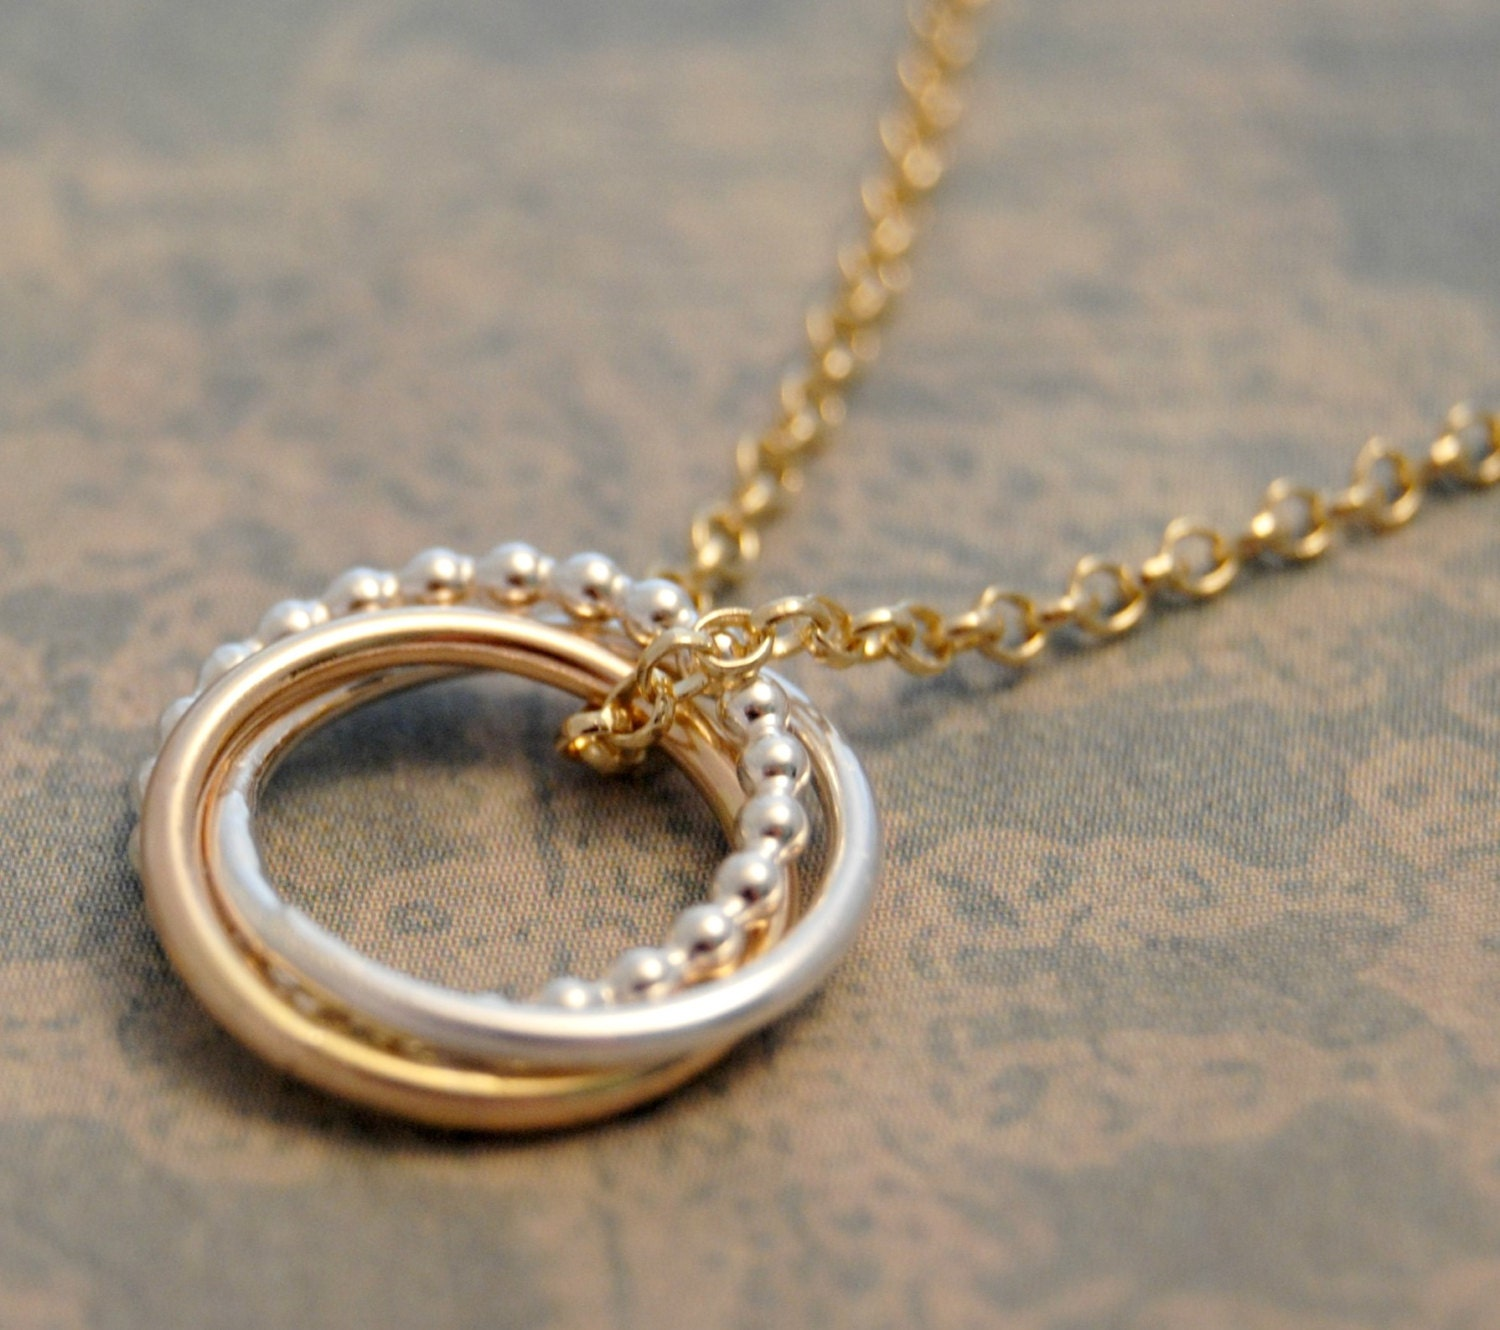 knot 1 2 interlocking rings necklace 3 rings